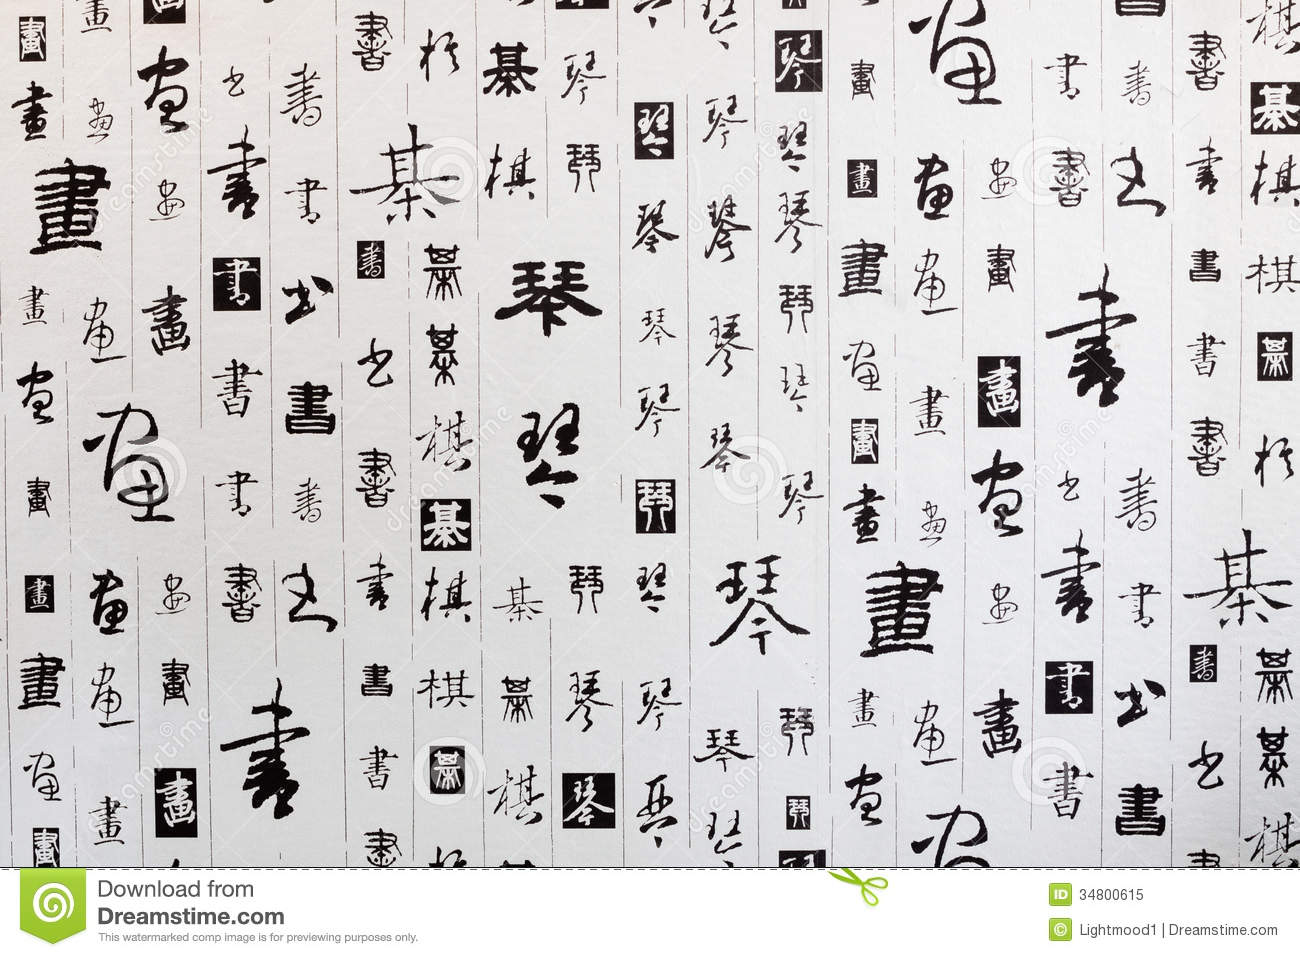 Chinese Letters Wallpaper Wallpapersafari: calligraphy ancient china